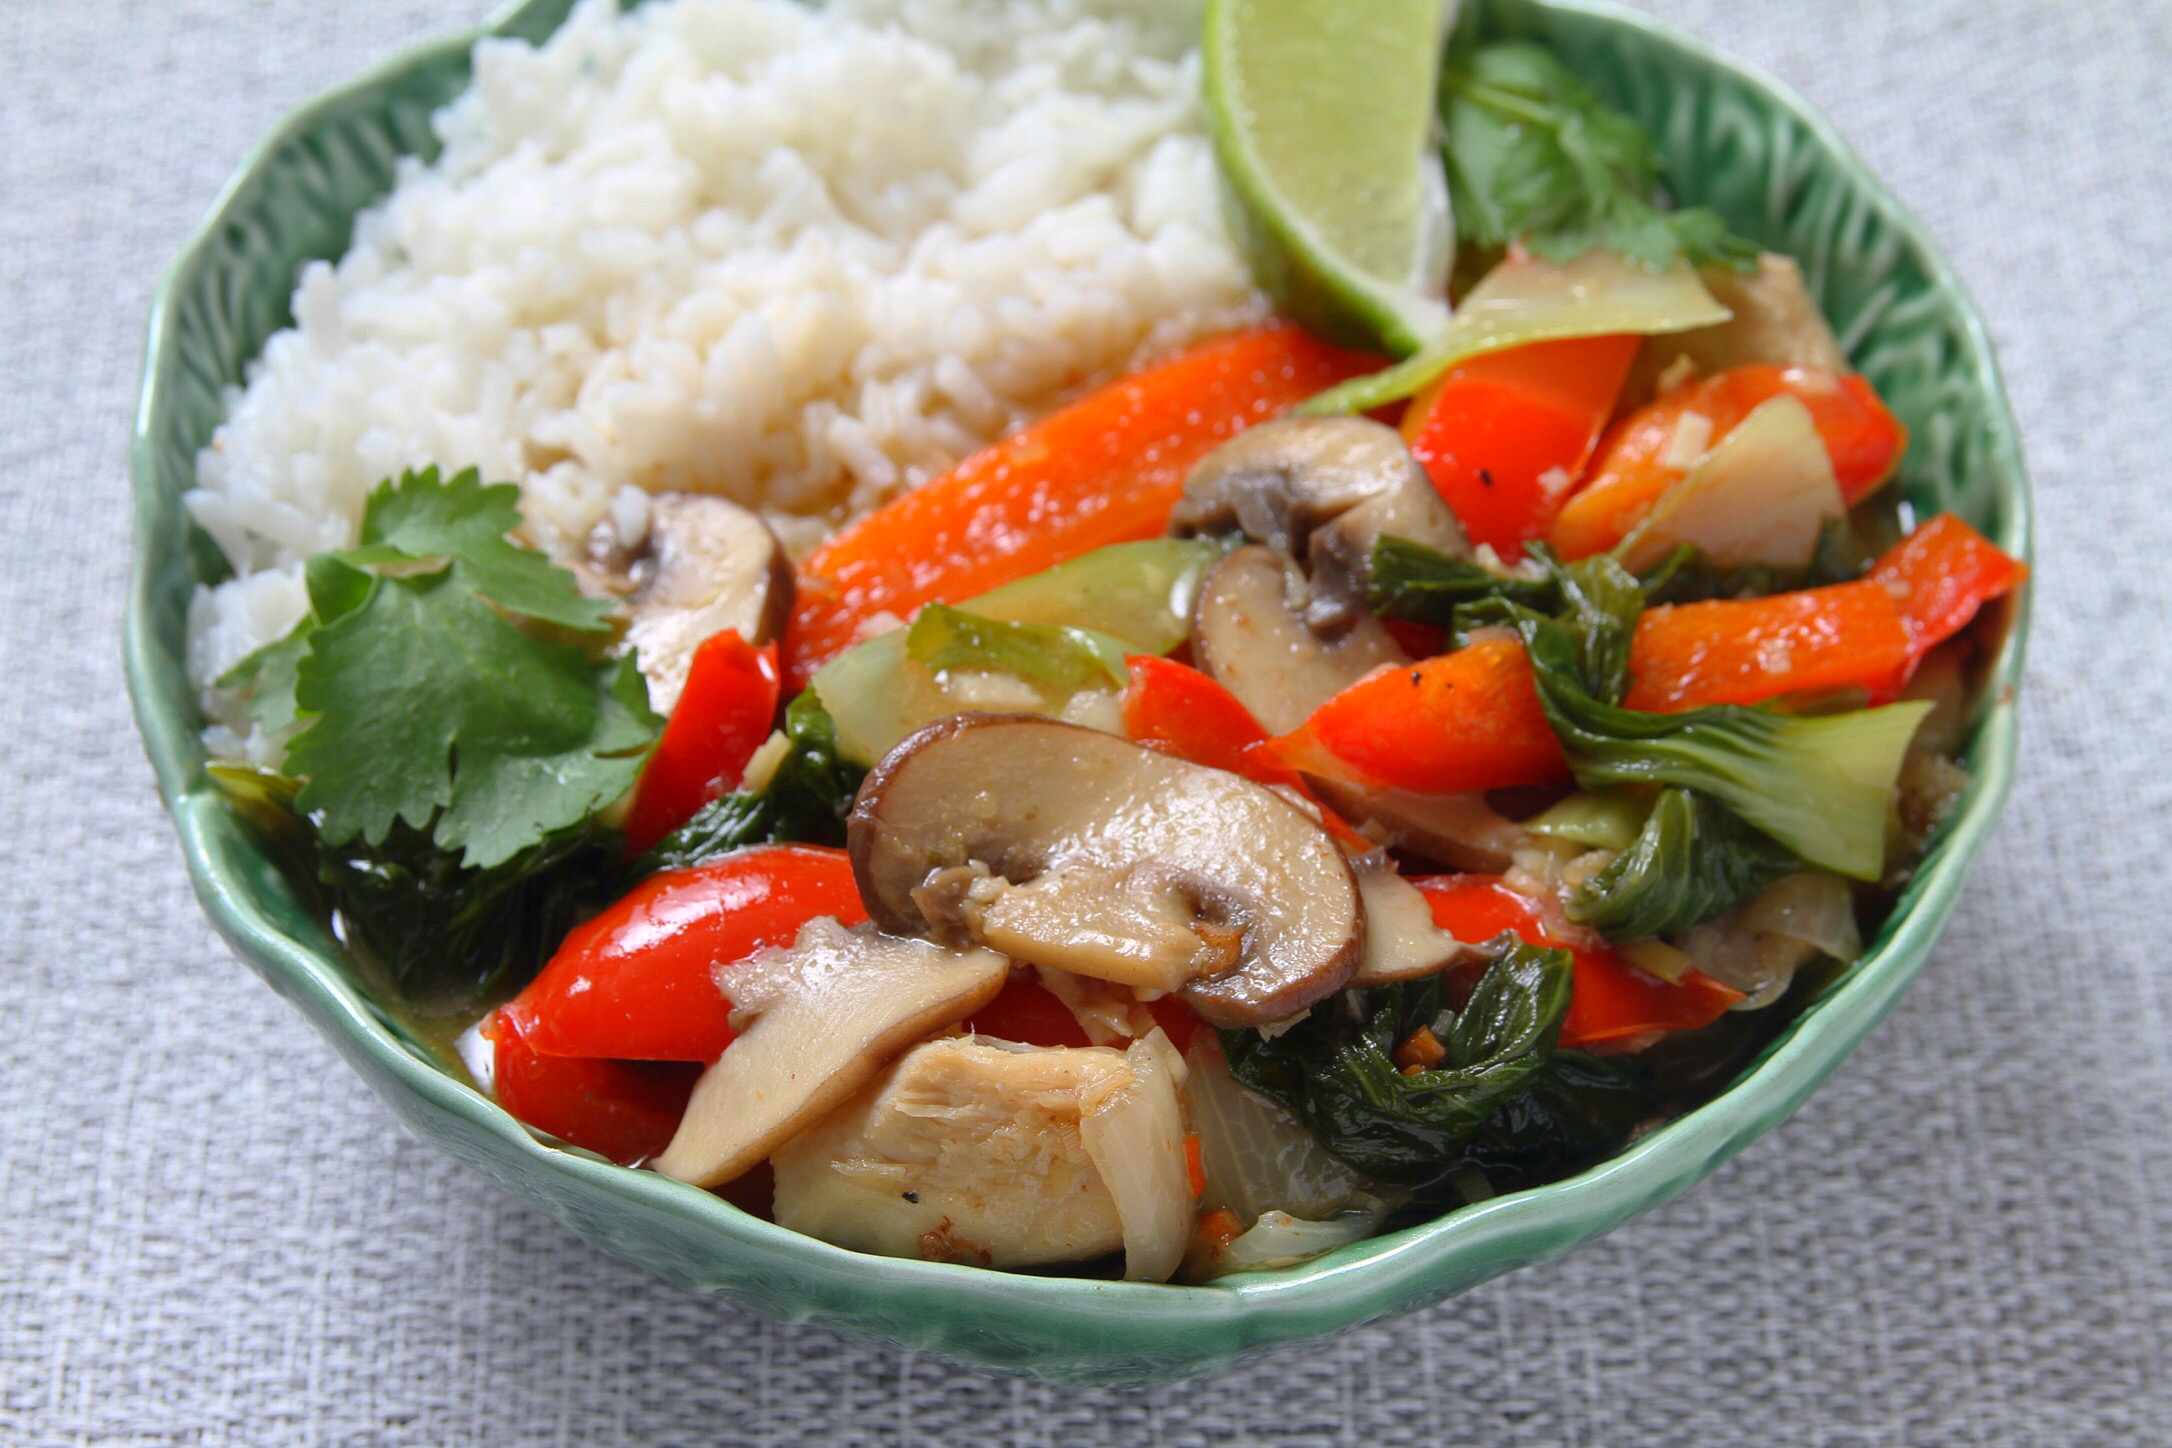 Coconut curry with chicken and vegetables. Recipe from  Cherry Bombe The Cookbook.  Served with jasmine rice and lime wedge.